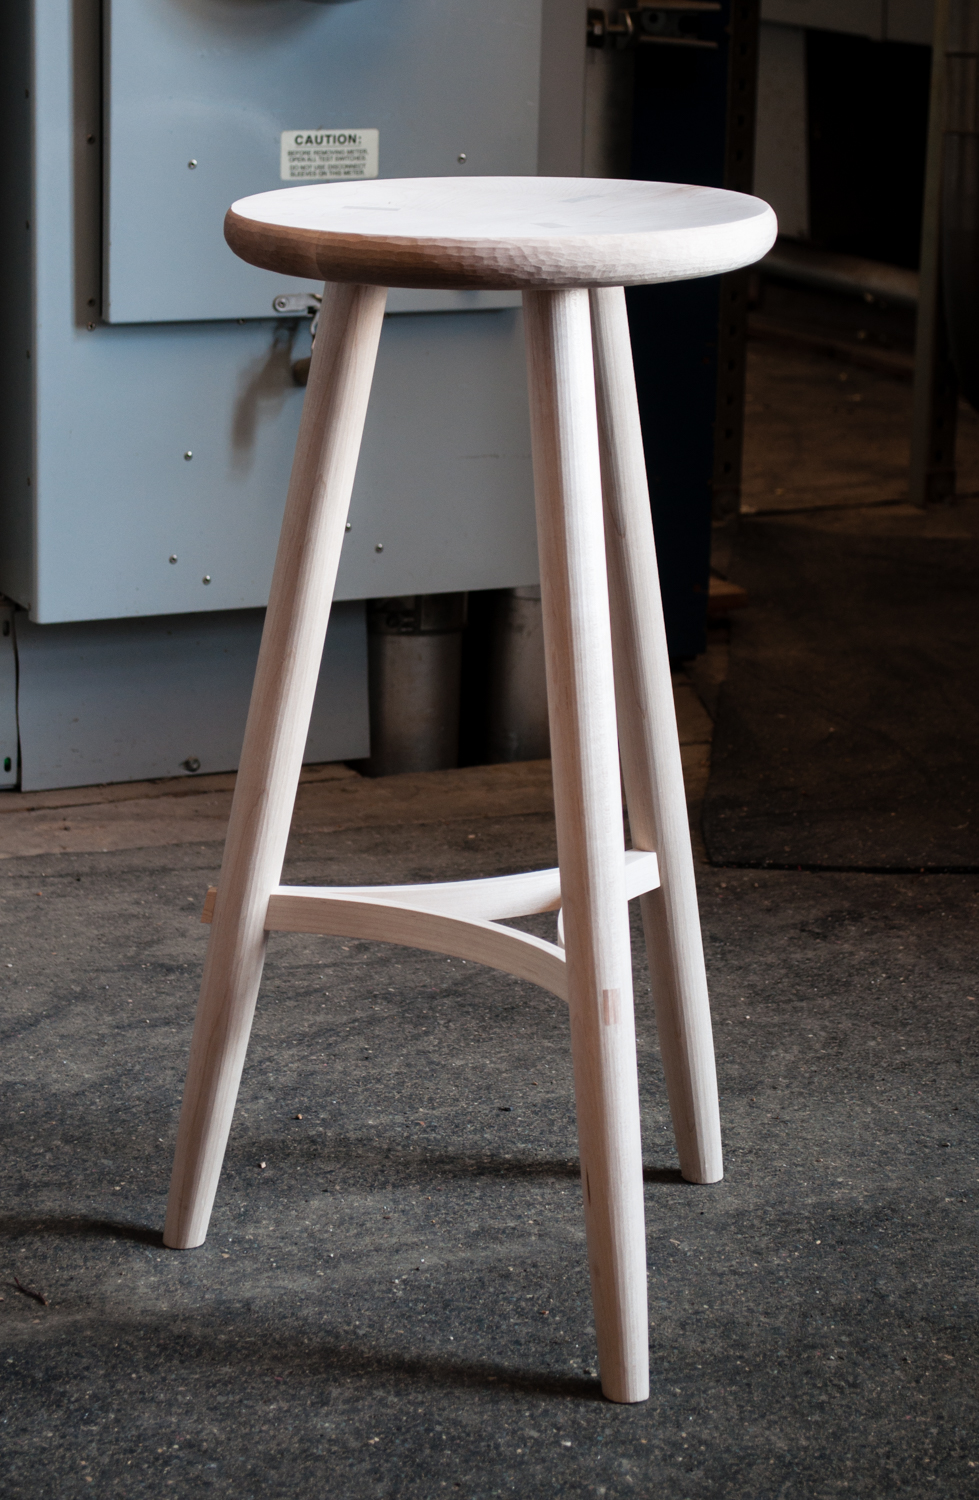 3 Legged Wooden Stool Sales Motivation As A Legged Stool